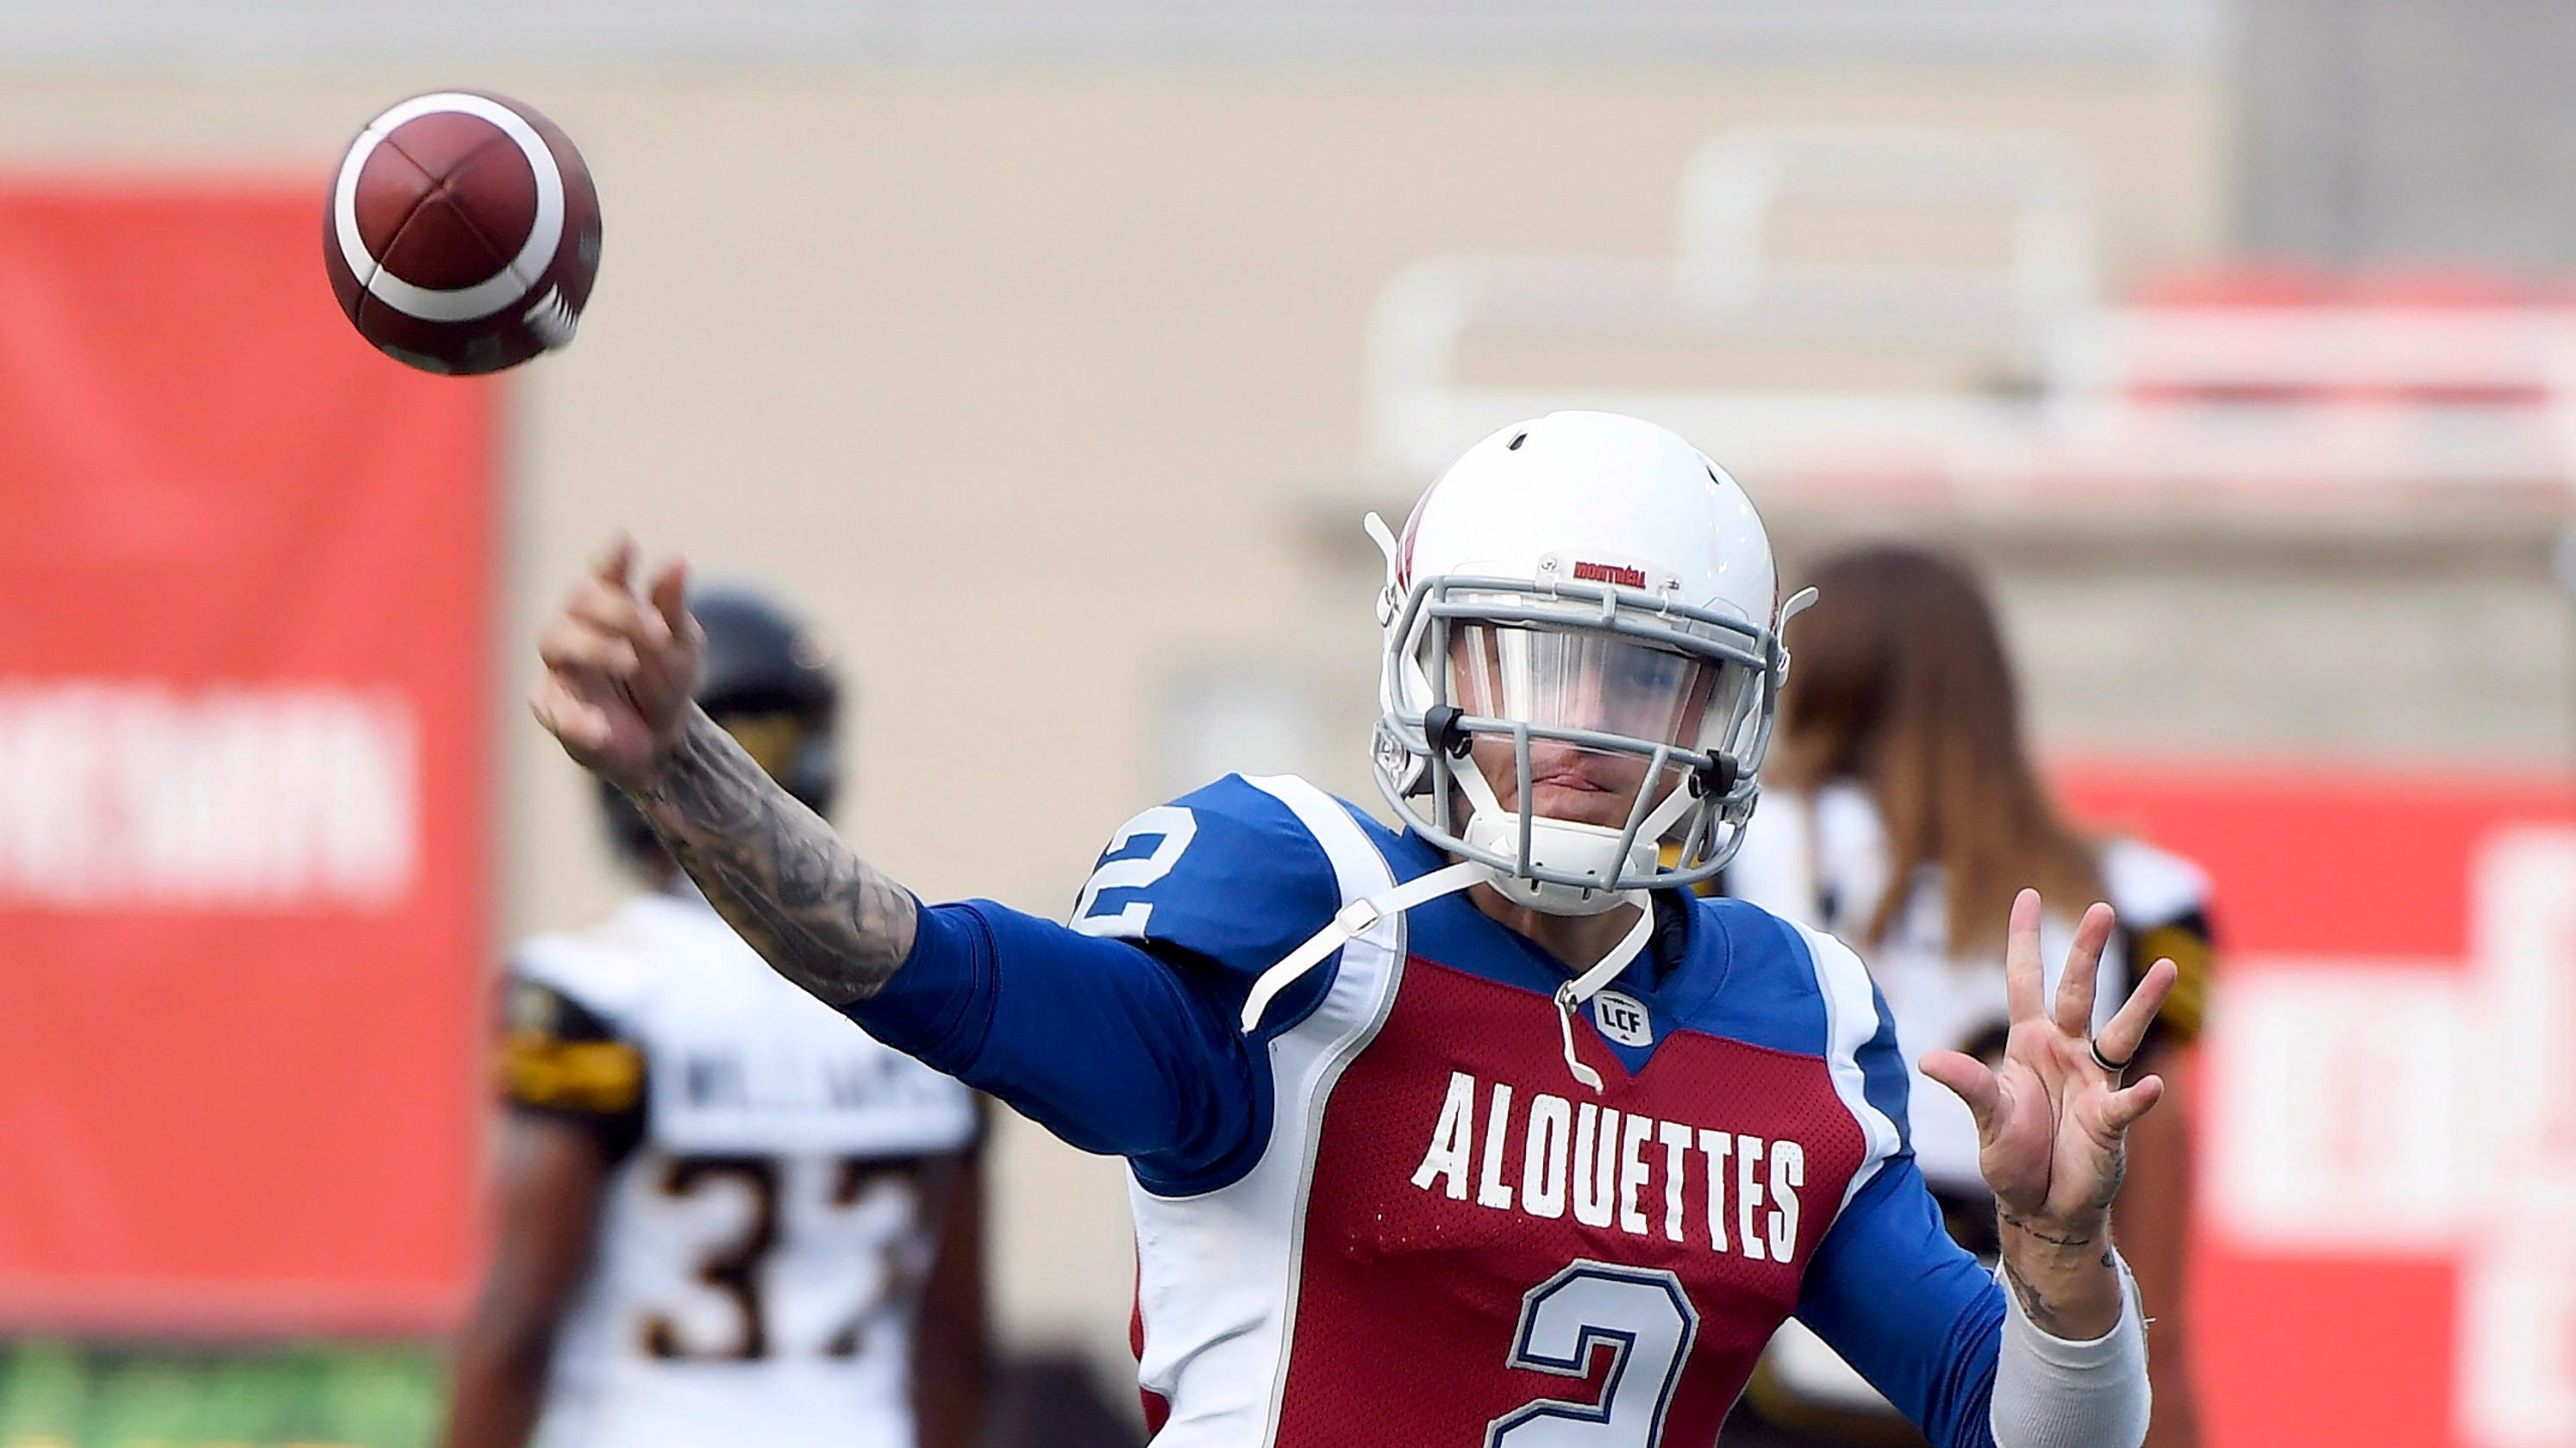 Johnny Manziel joining Alliance of American Football s Memphis Express f118bd99d